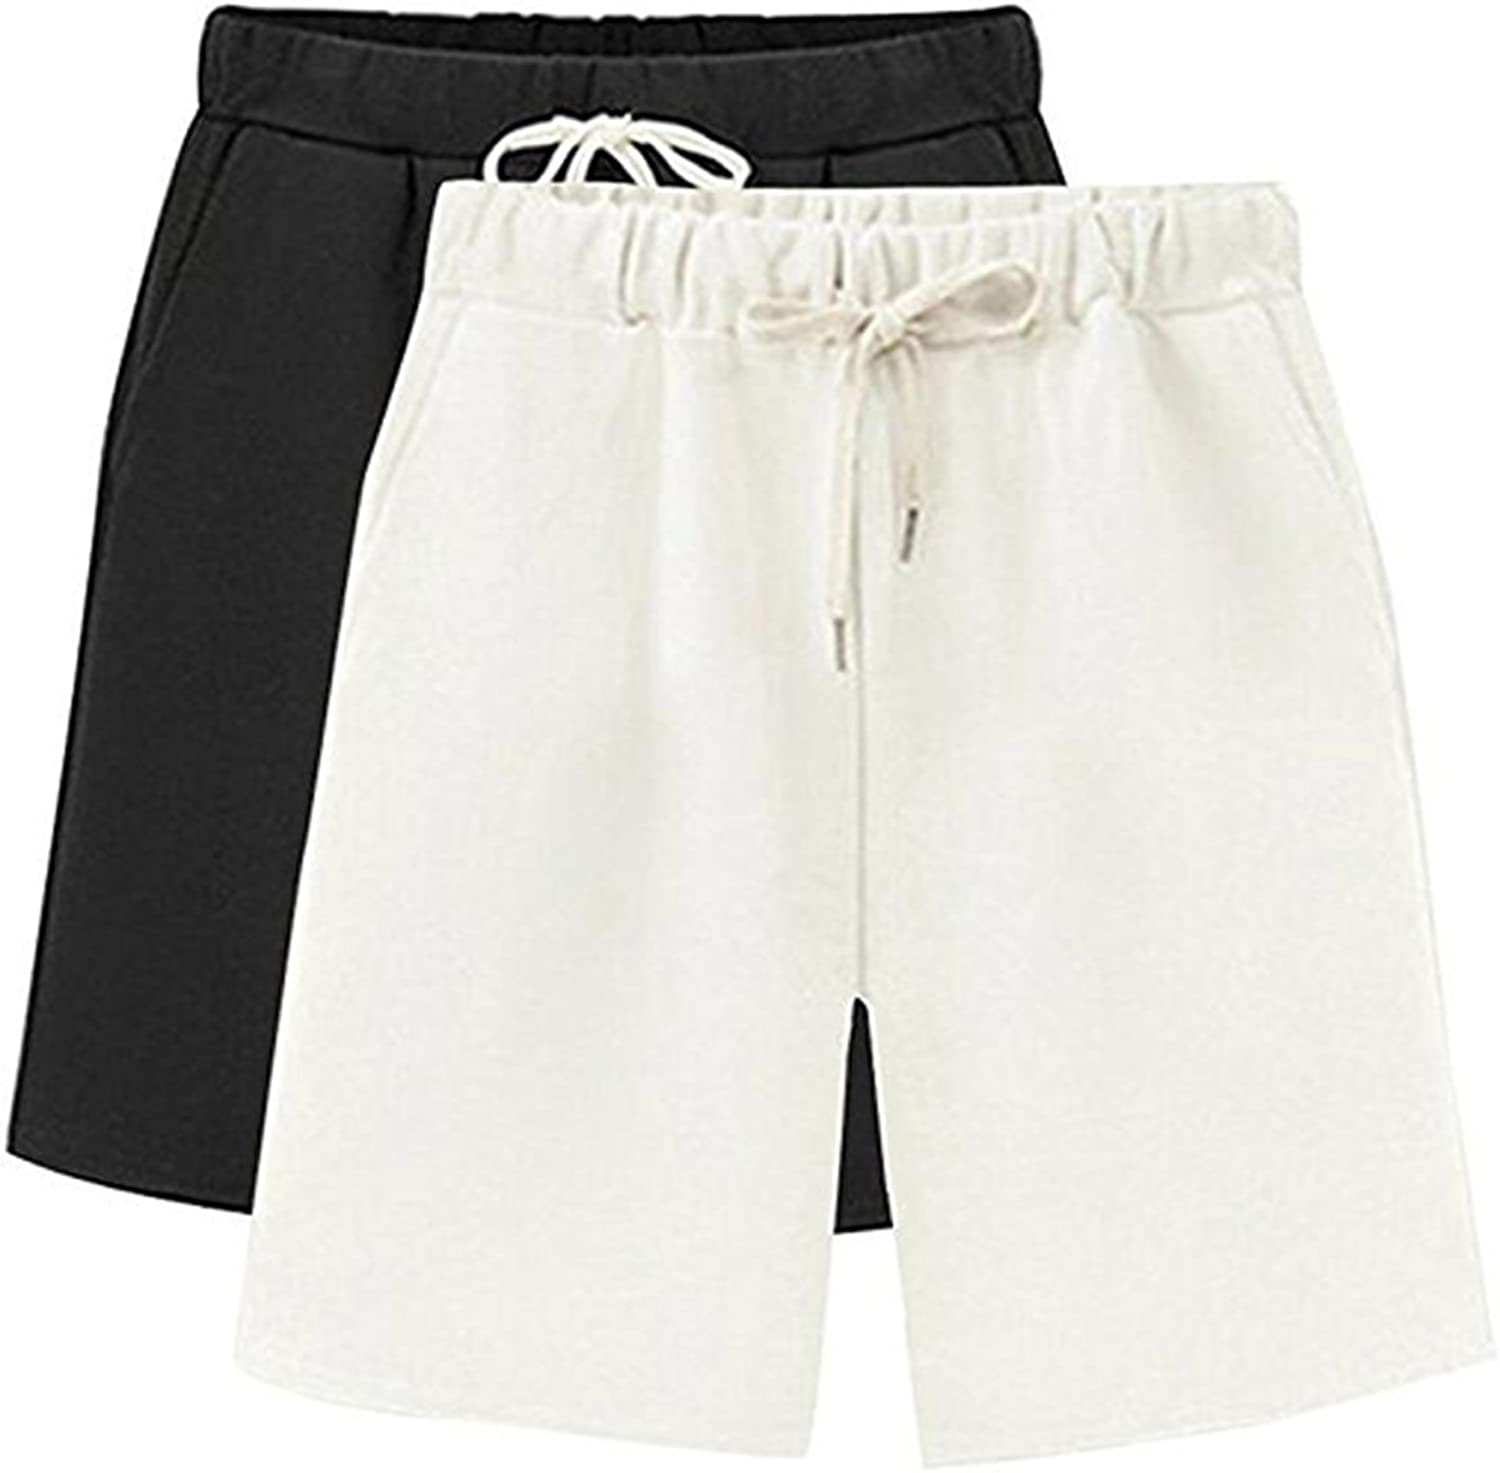 HOW'ON Women's Soft Knit Elastic Waist Jersey Casual Bermuda Shorts with Drawstring